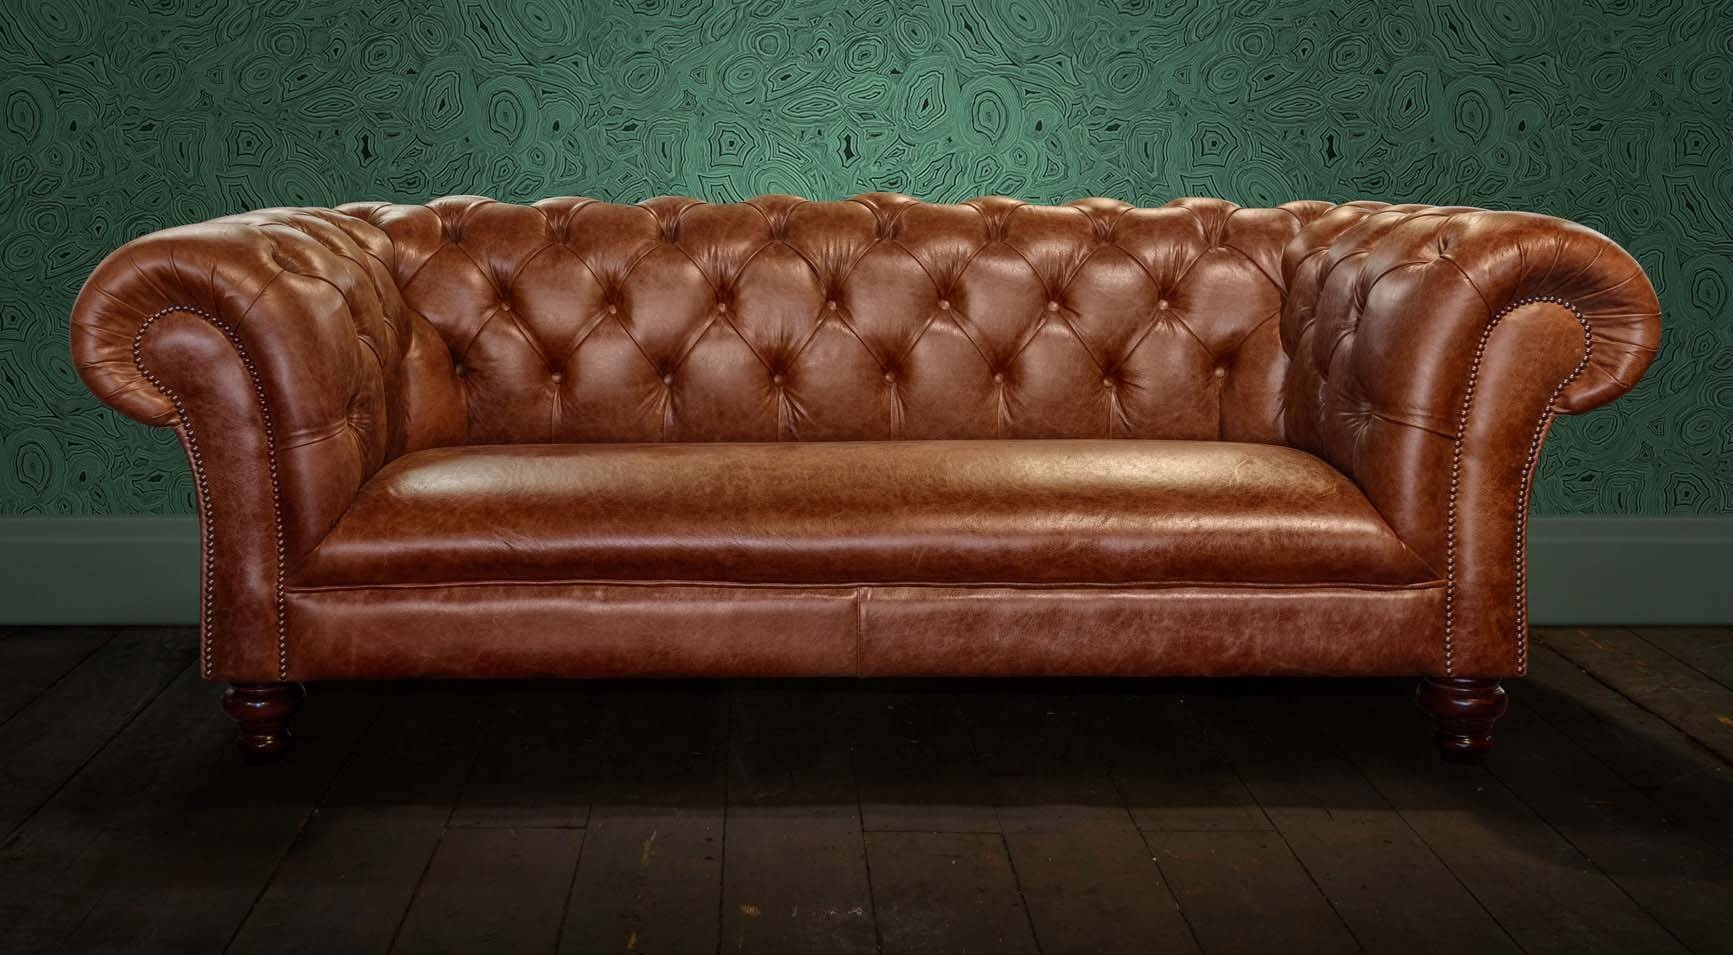 Chesterfields Of England | The Original Chesterfield Company within Leather Chesterfield Sofas (Image 11 of 30)